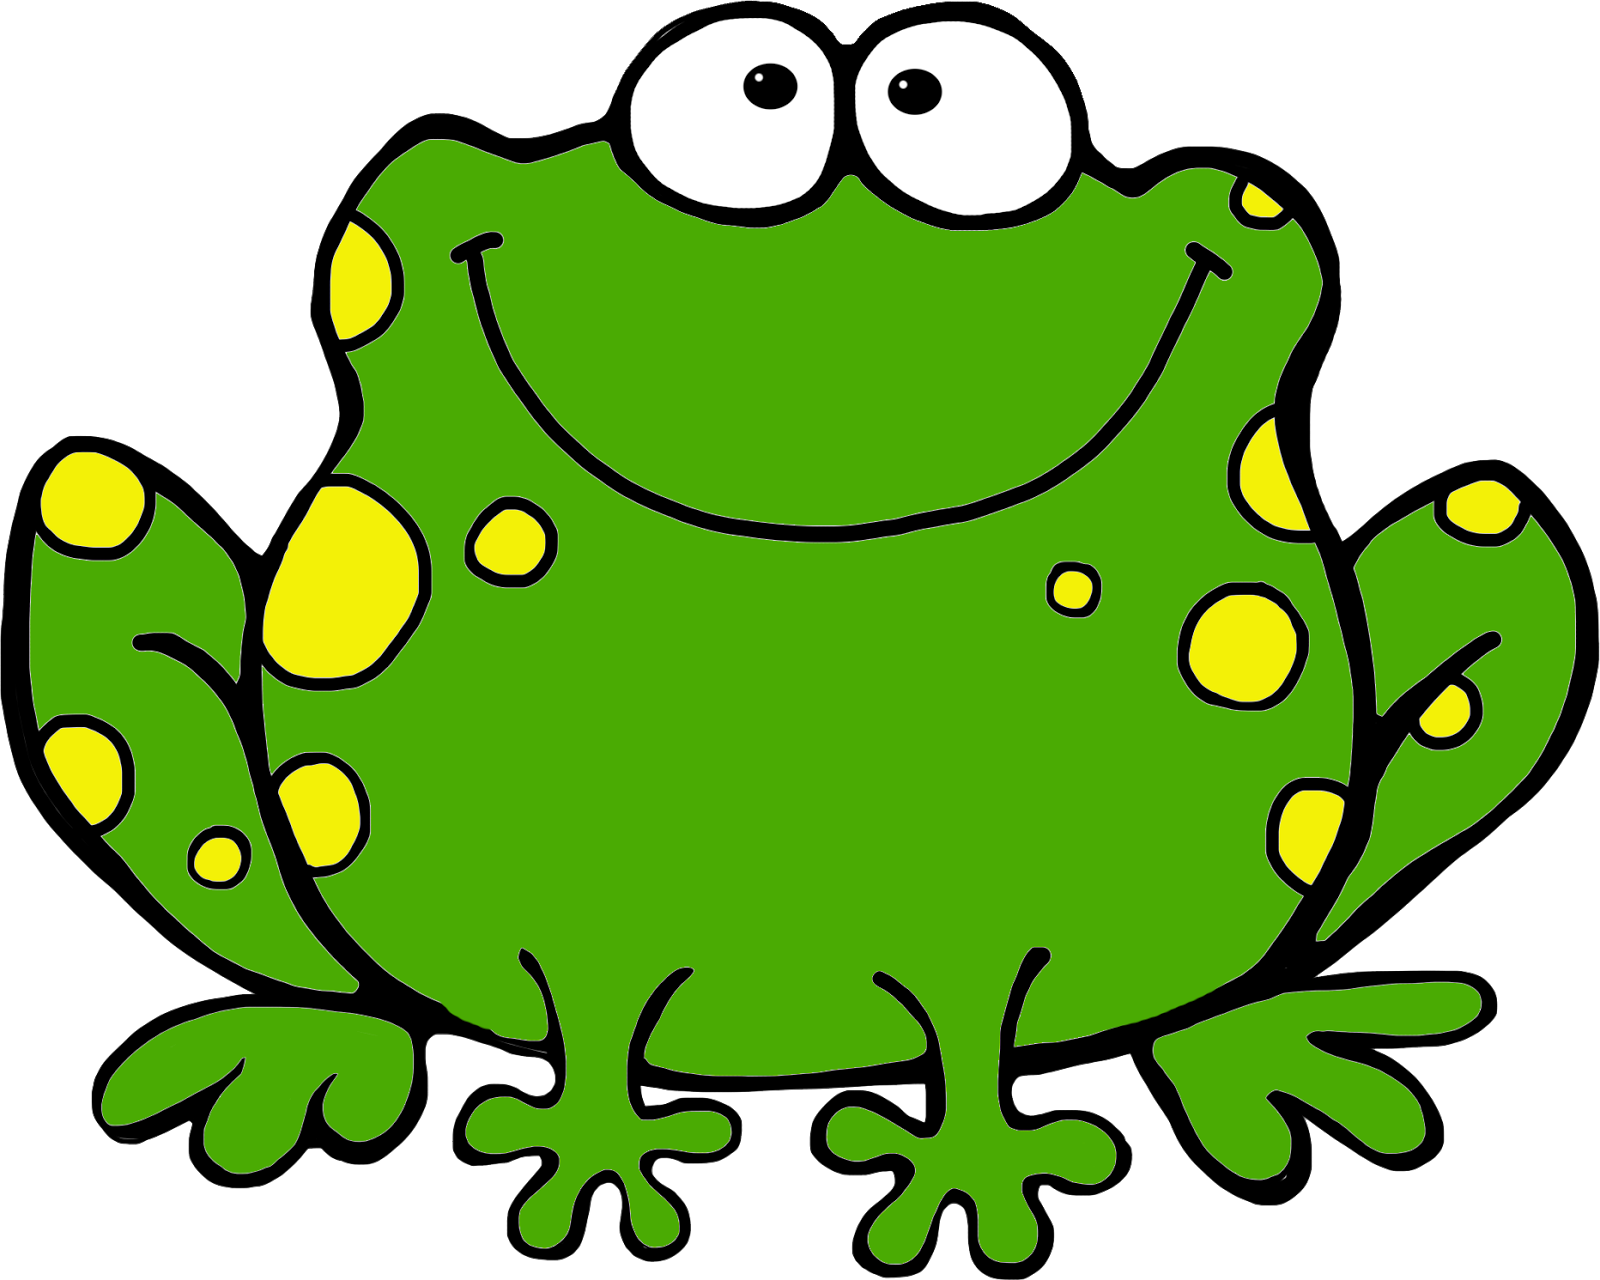 Frog Clip Art For Kids Cliparts Co-Frog Clip Art For Kids Cliparts Co-1